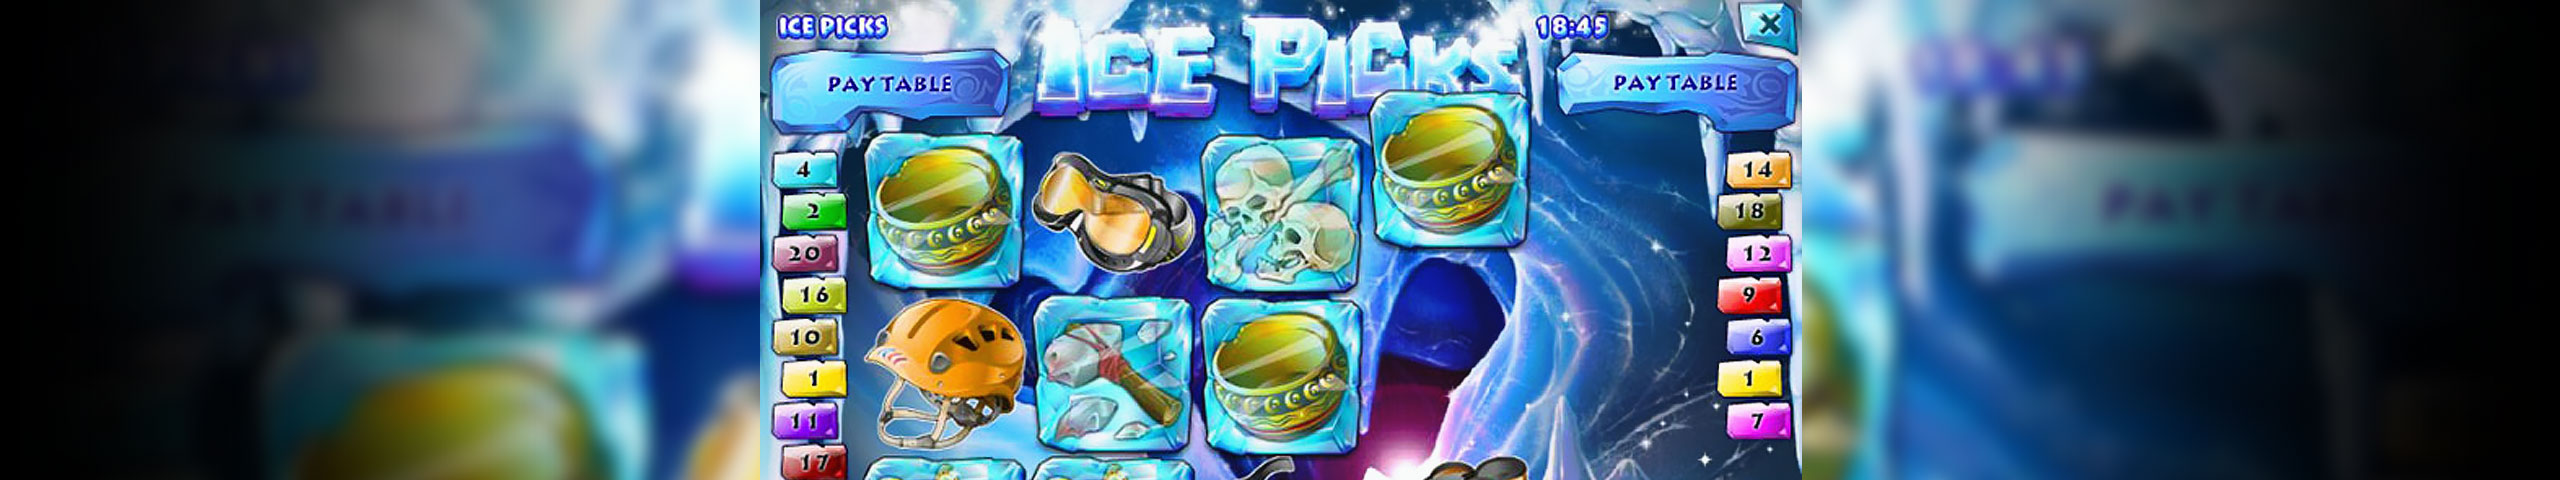 Spelautomater Ice Picks, Rival Gaming Slider - Wyrmspel.com